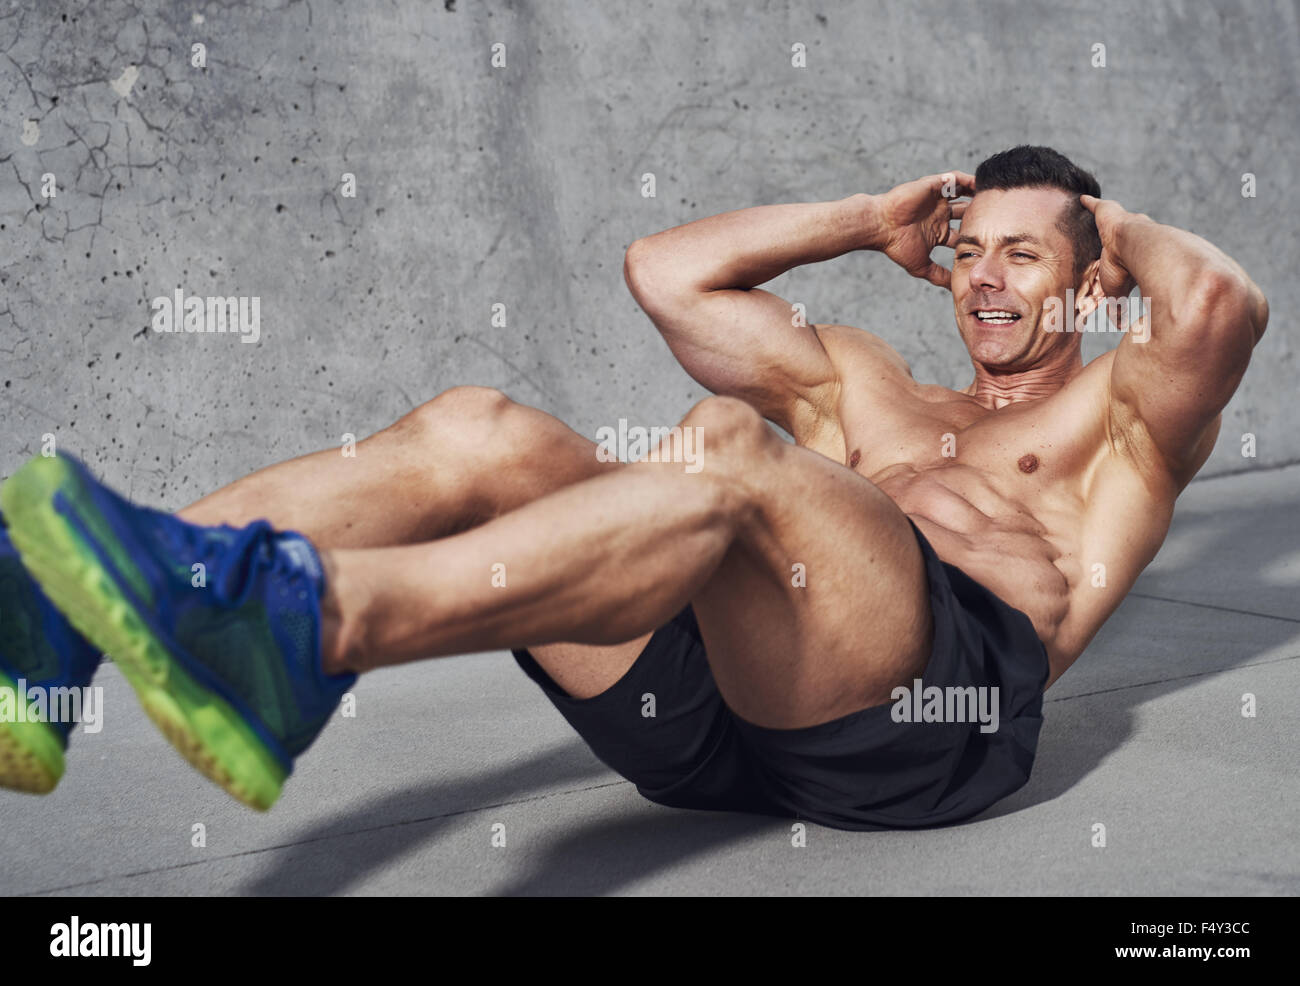 Muscular male fitness athlete doing sit ups, Clean look on grey background, visible no shirt - Stock Image